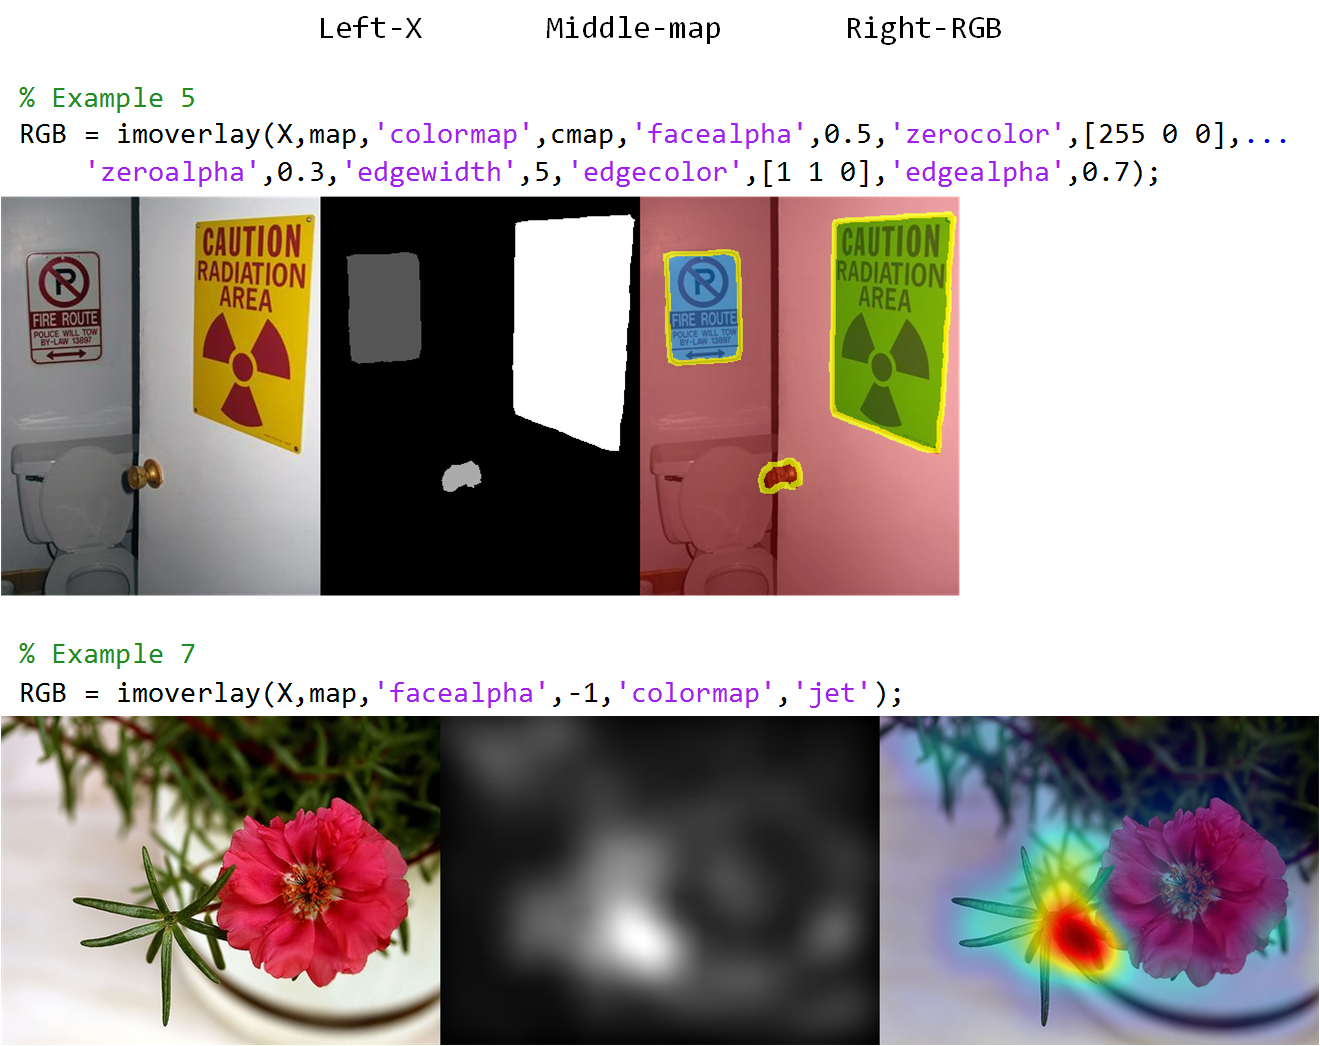 Image Processing Toolbox using MATLAB - imoverlay